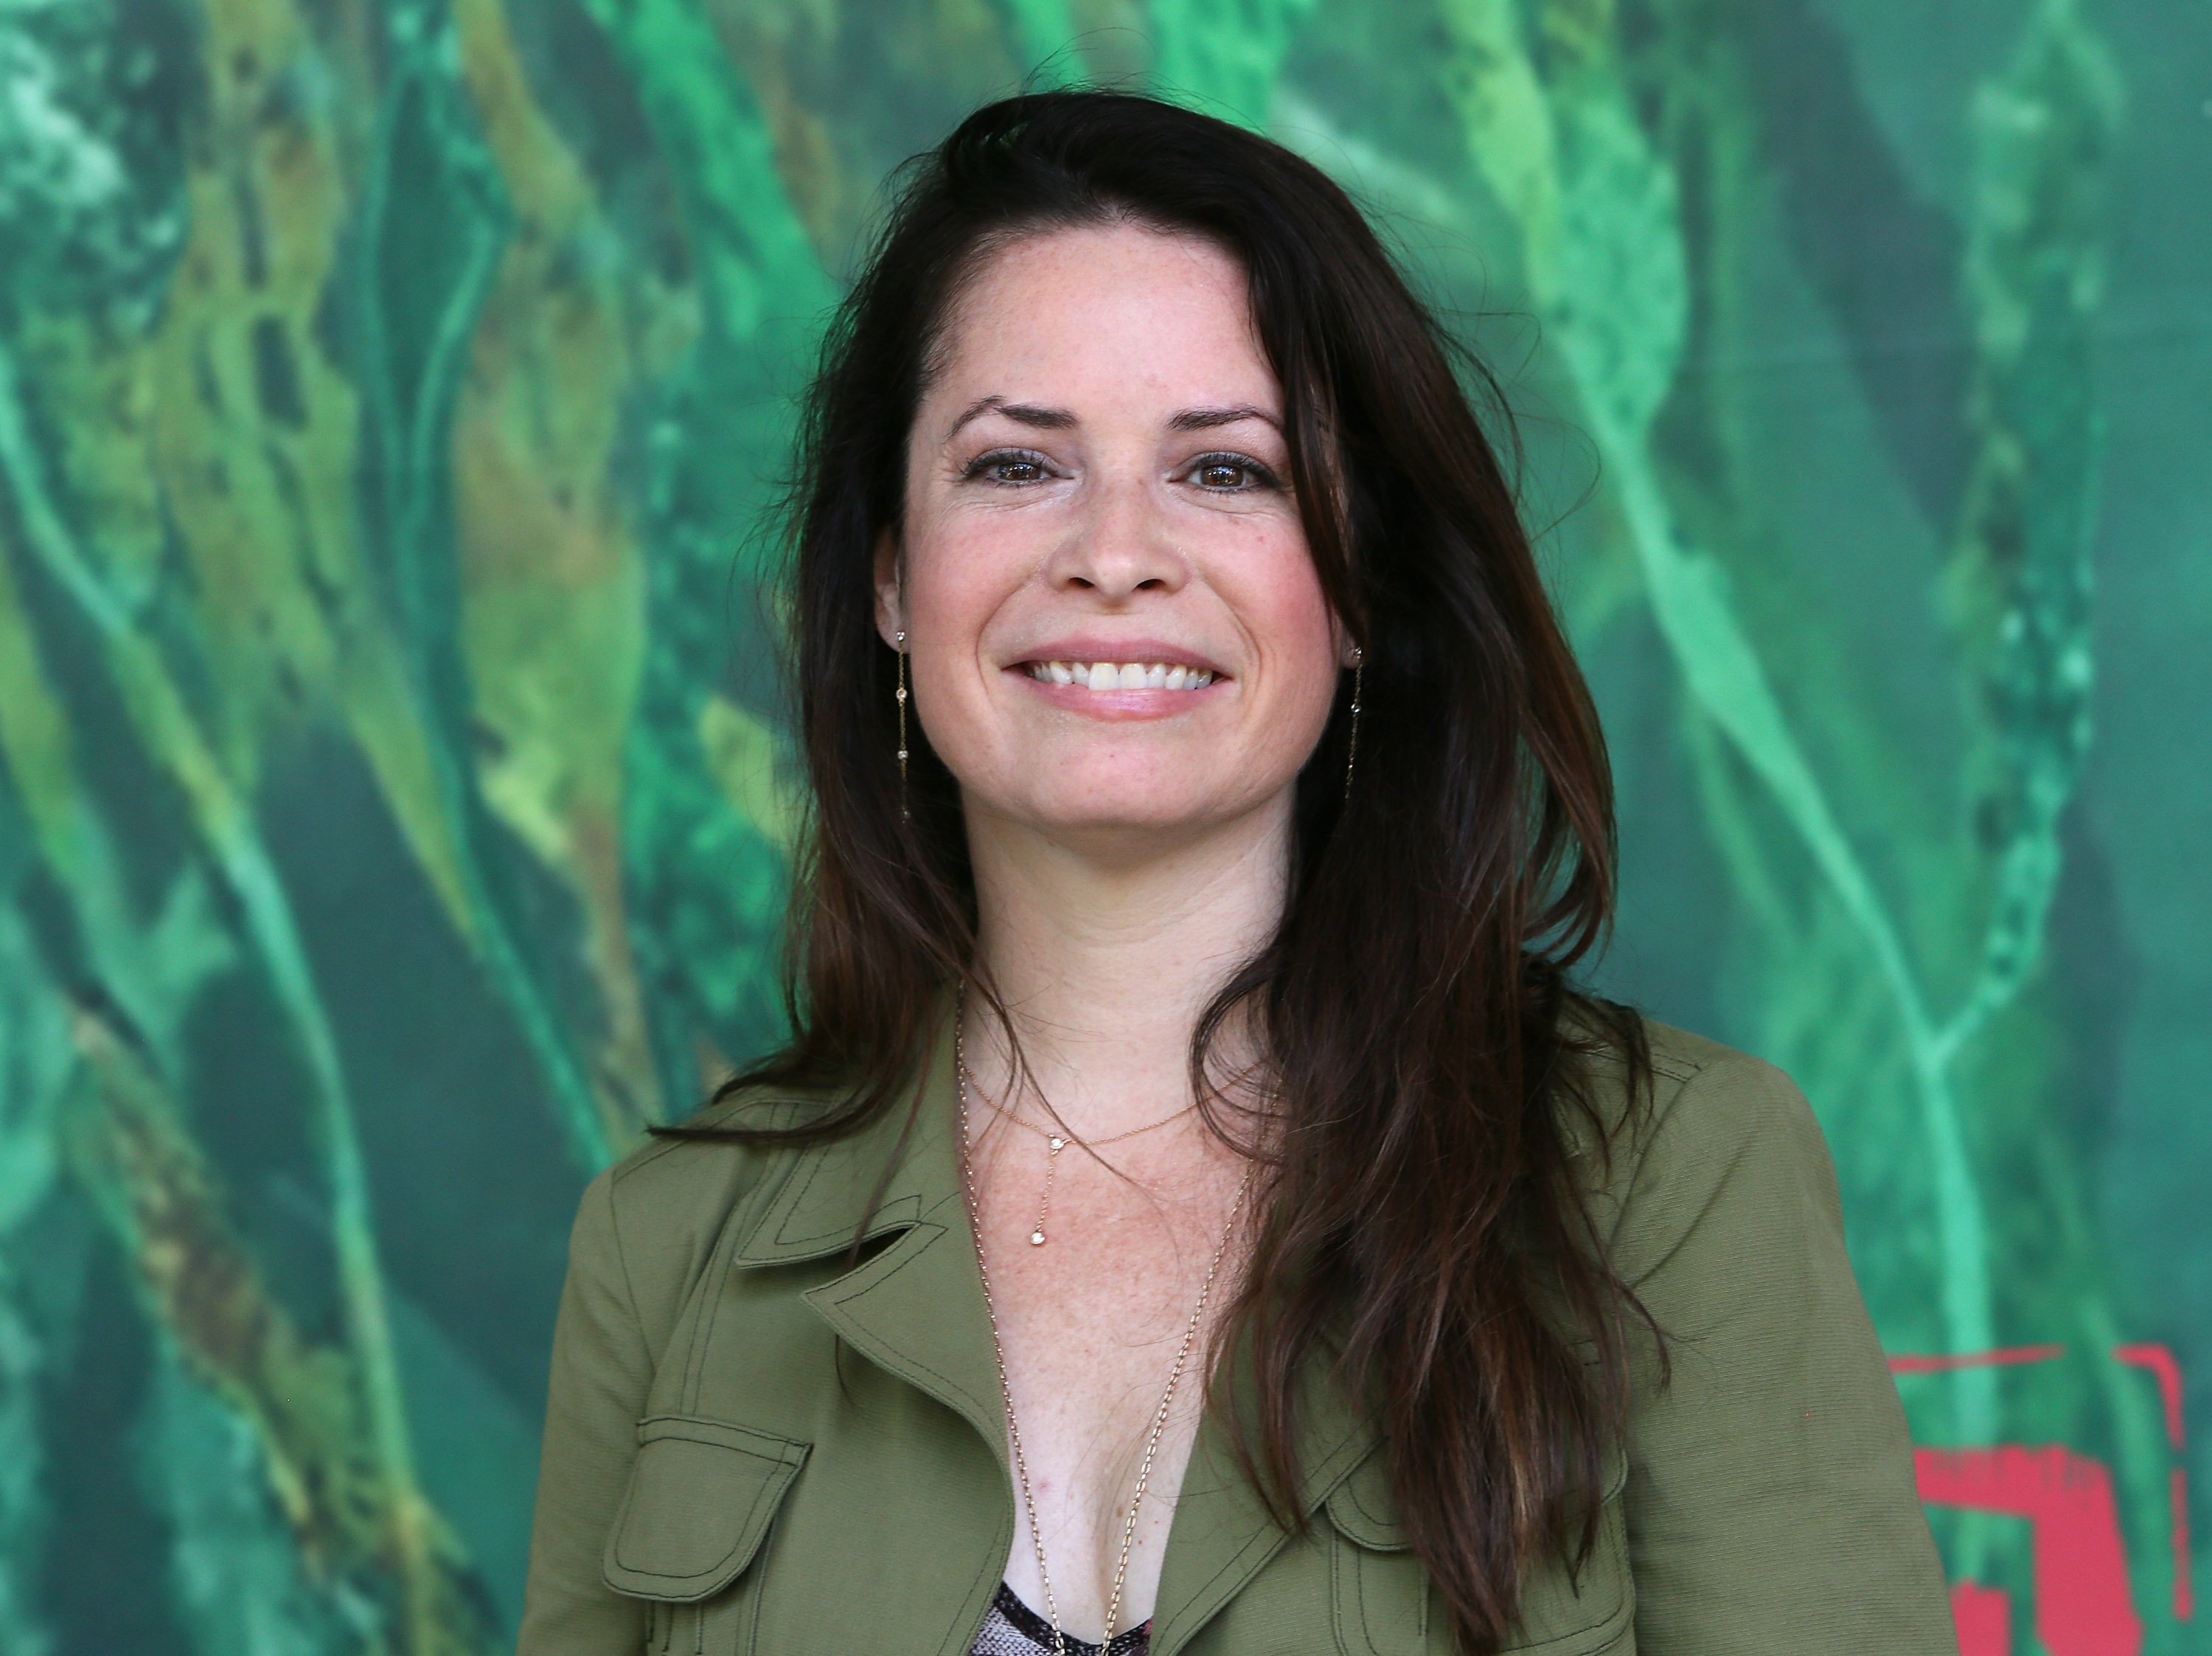 Image Credits: Getty Images   Holly Marie Combs smiling for the camera